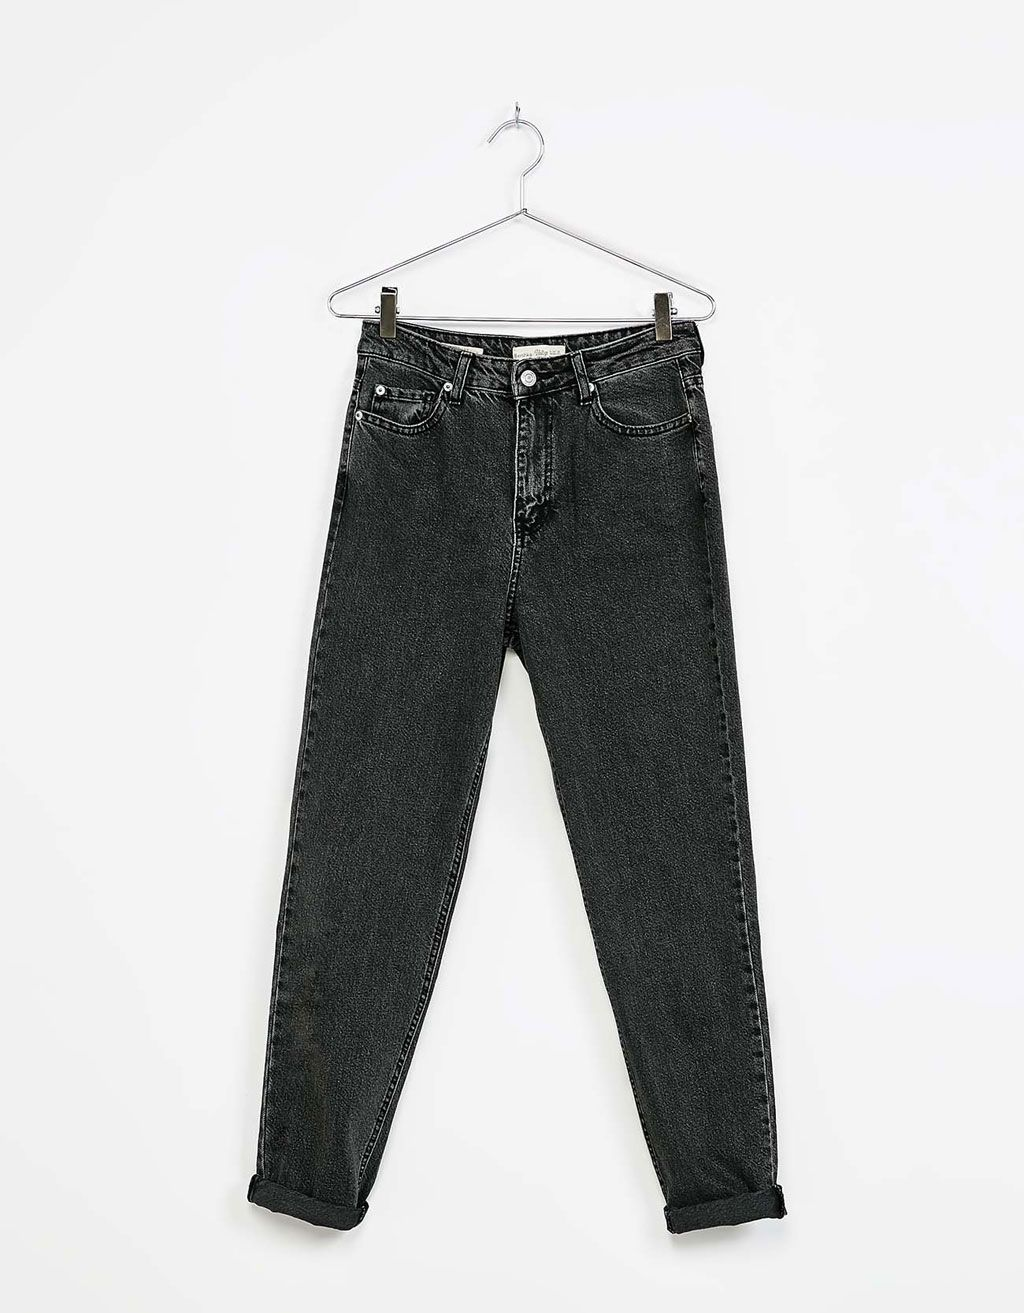 4749ad9d1b46 Mom fit' jeans hight waist | New Balance 1st | Jeans, Jeans fit, Fitness